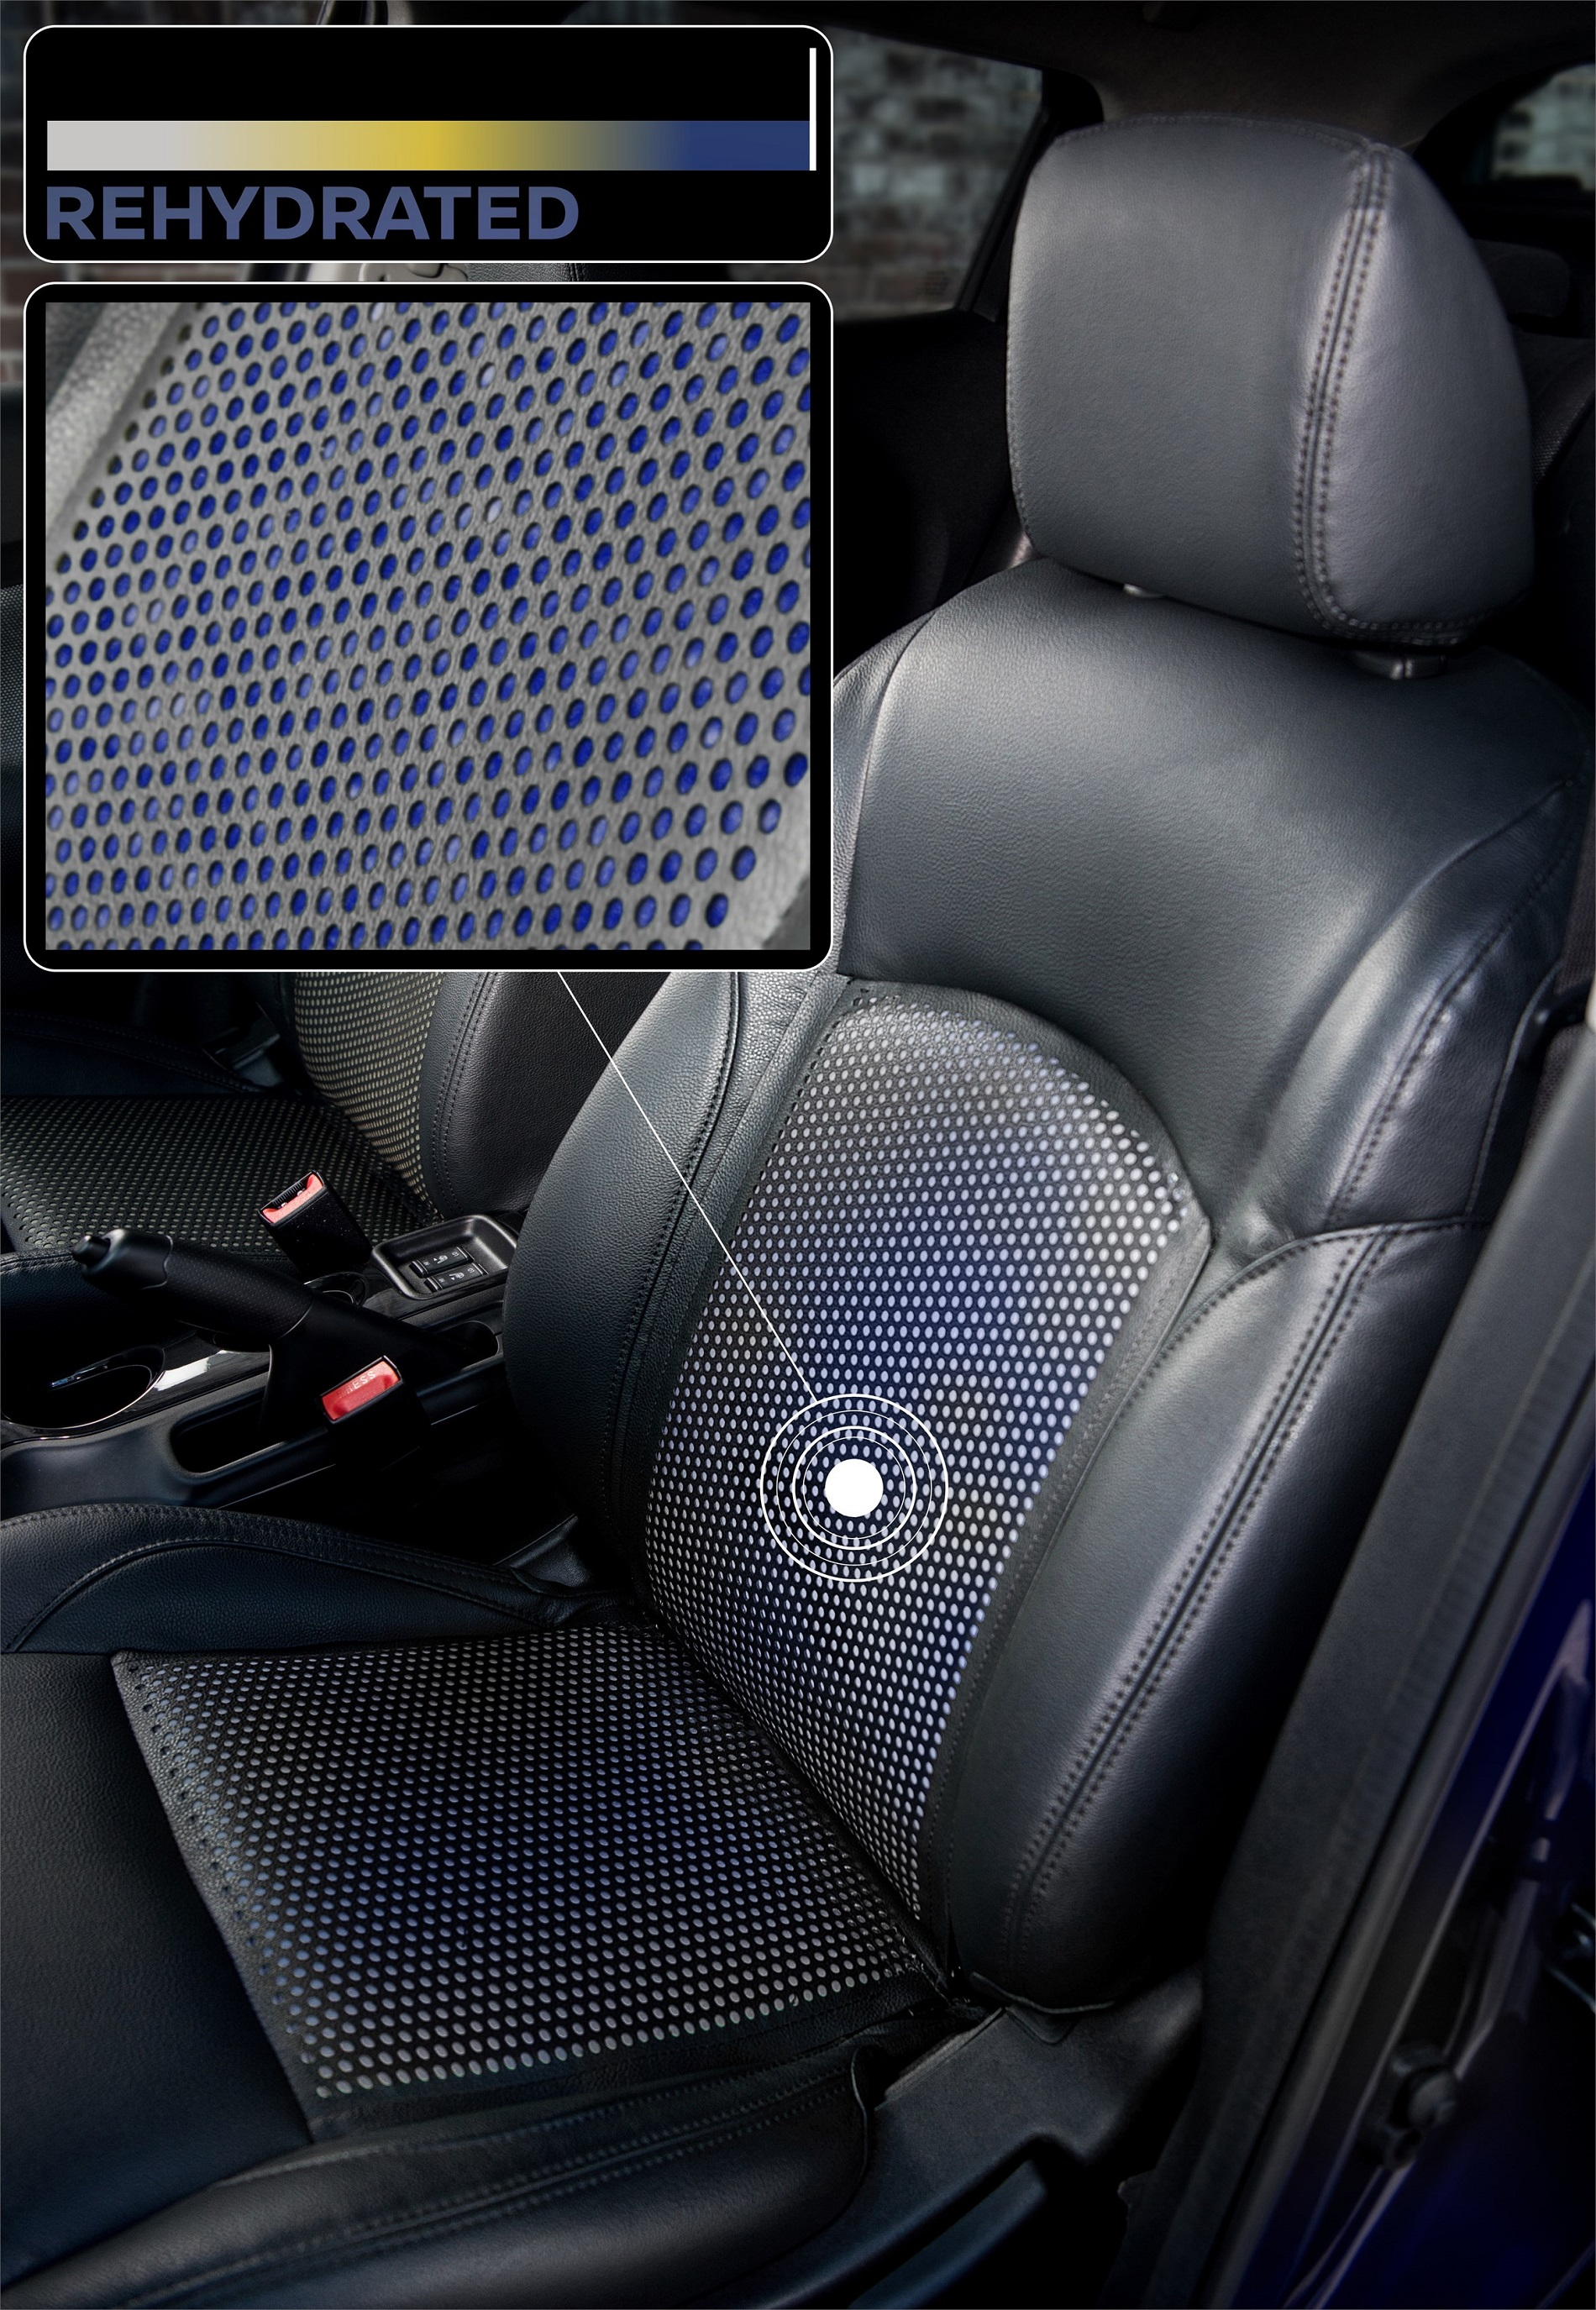 Once the driver is rehydrated, the seat will go blue again (Nissan)